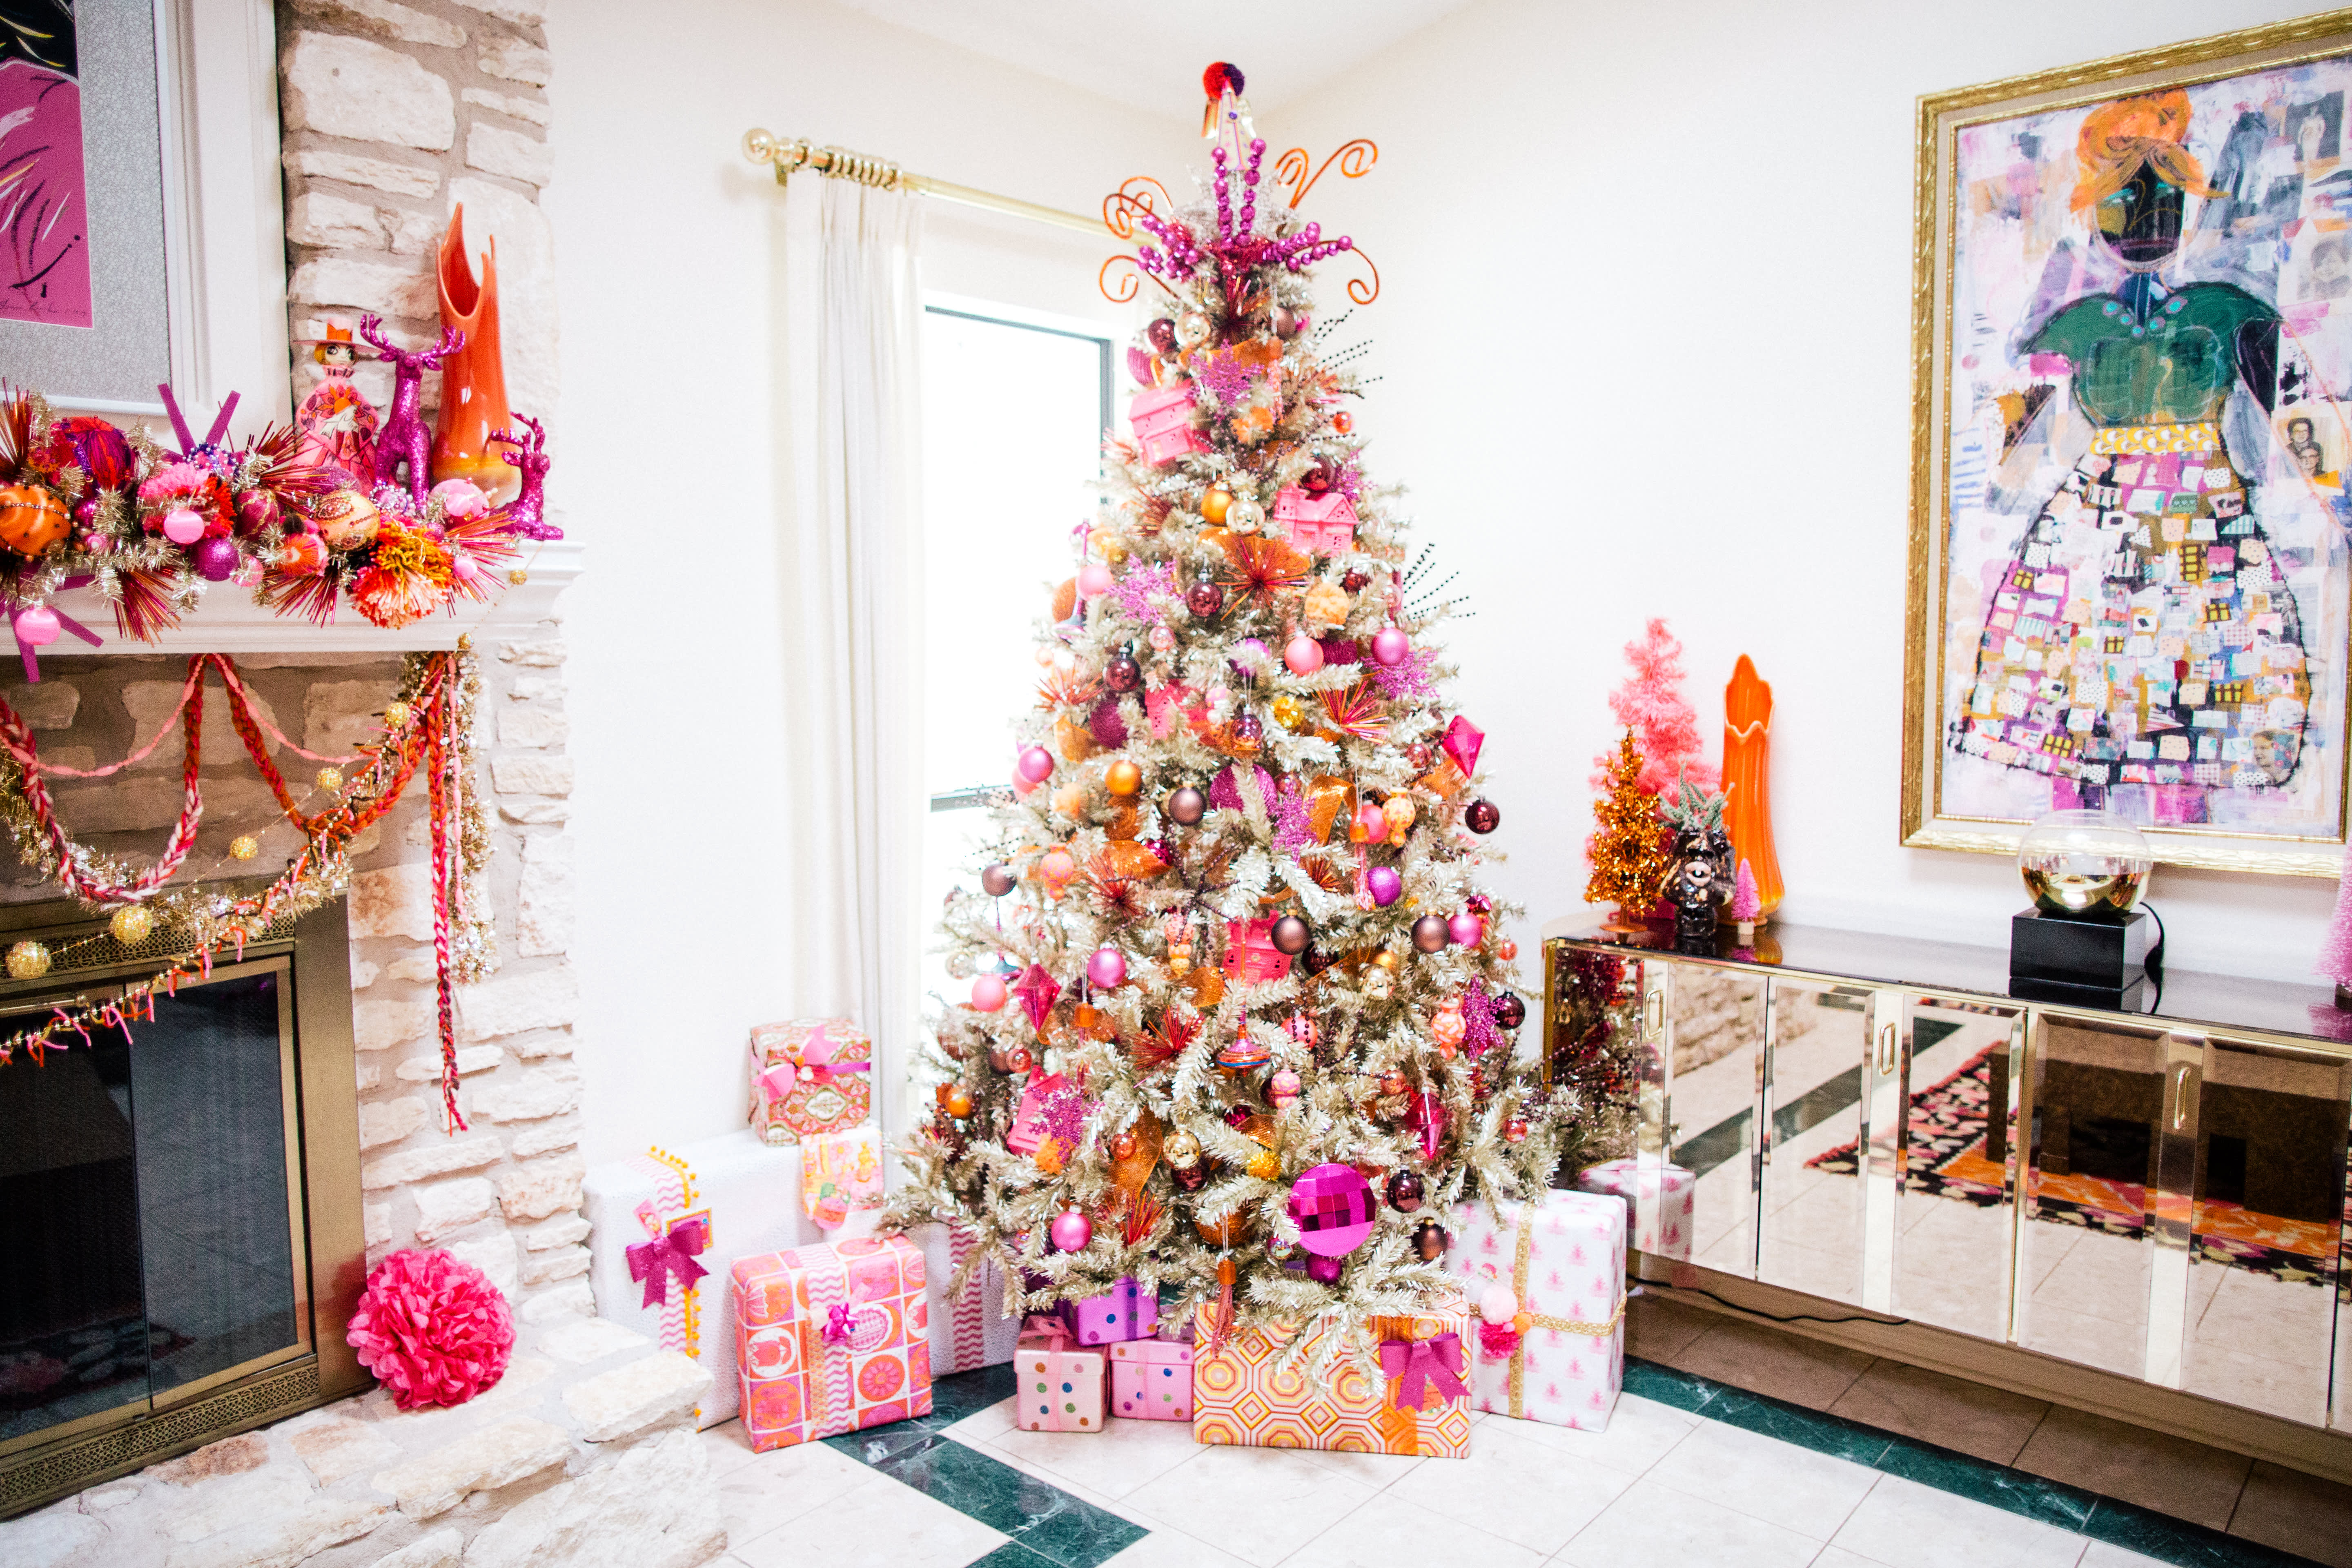 House Tour: A Home With 100 Colorful Christmas Trees